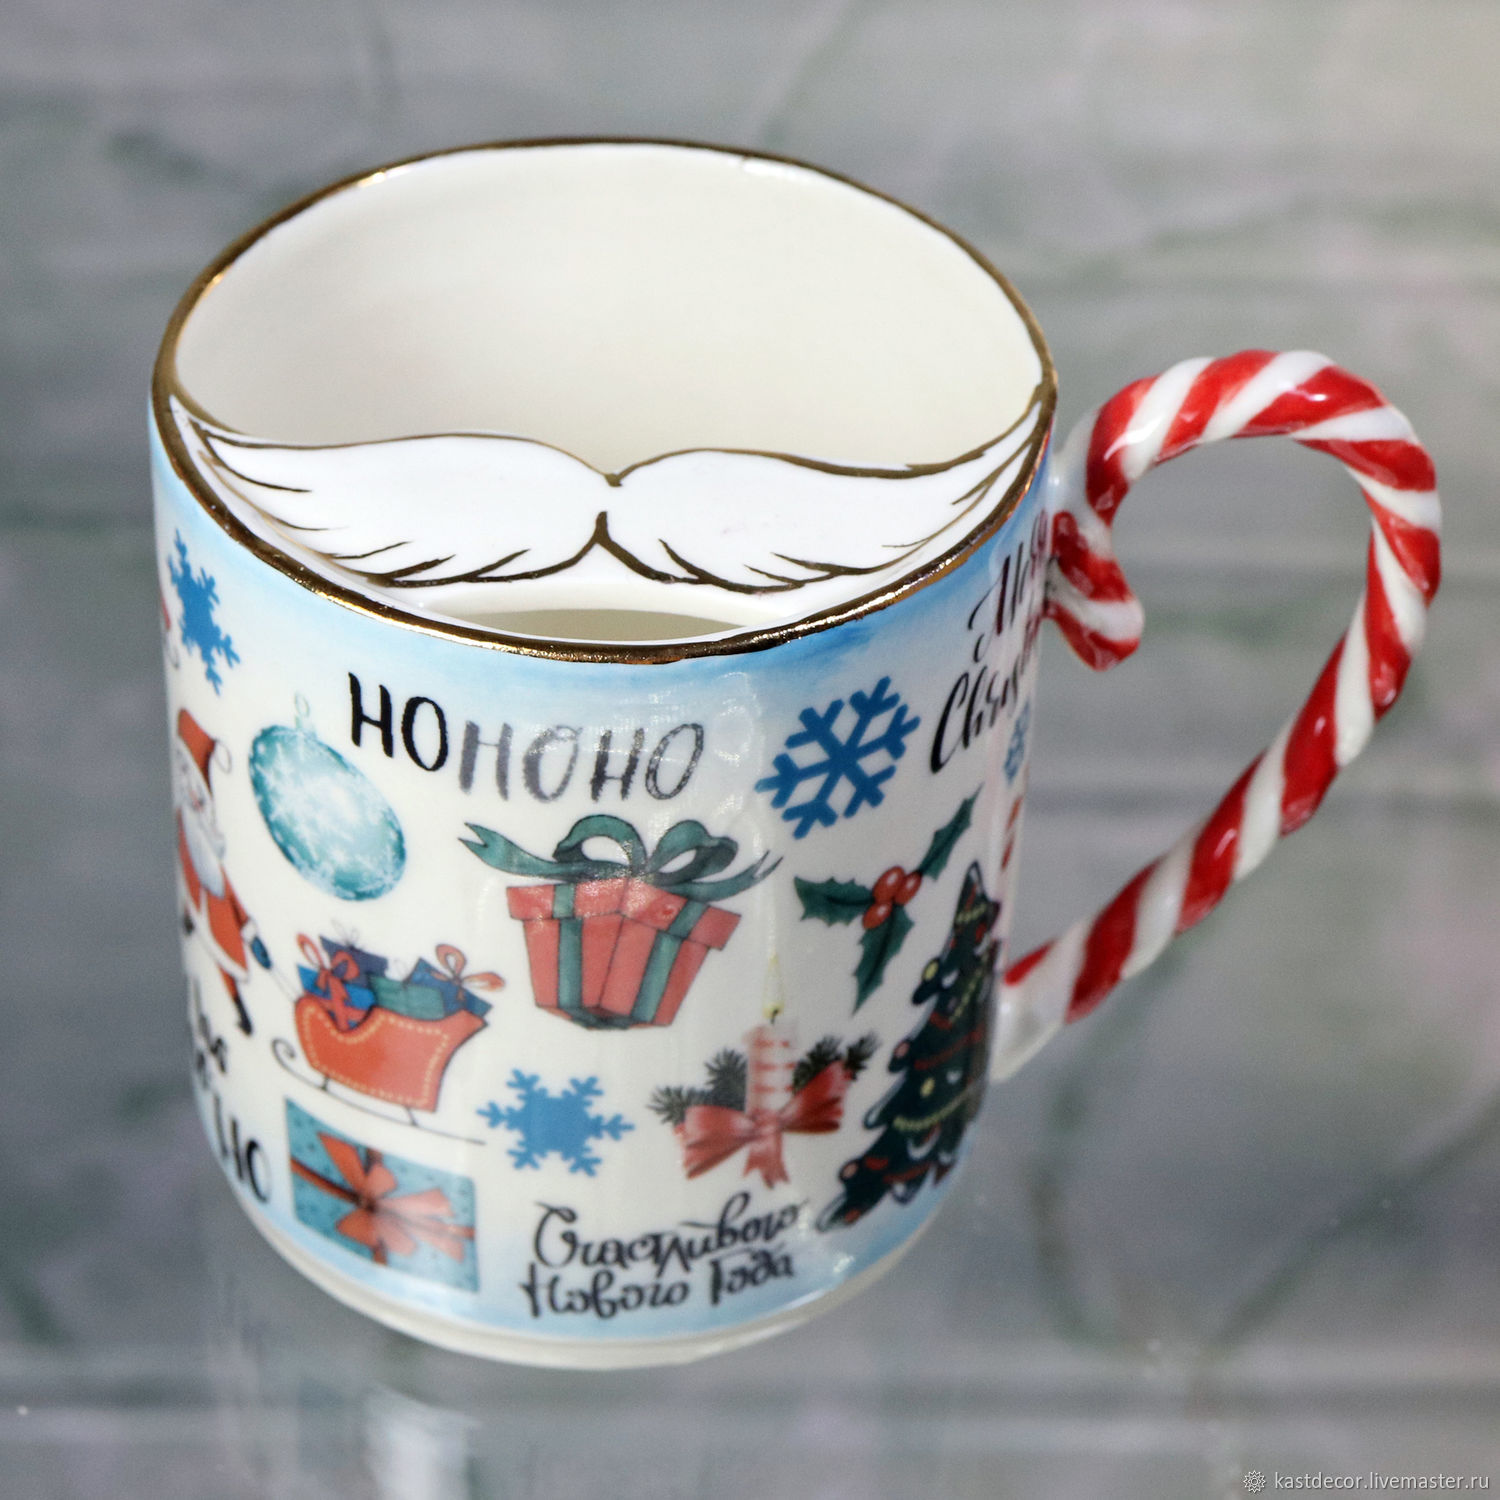 Mustachioed Cup 'All for the New year' porcelain, Mugs, Moscow,  Фото №1